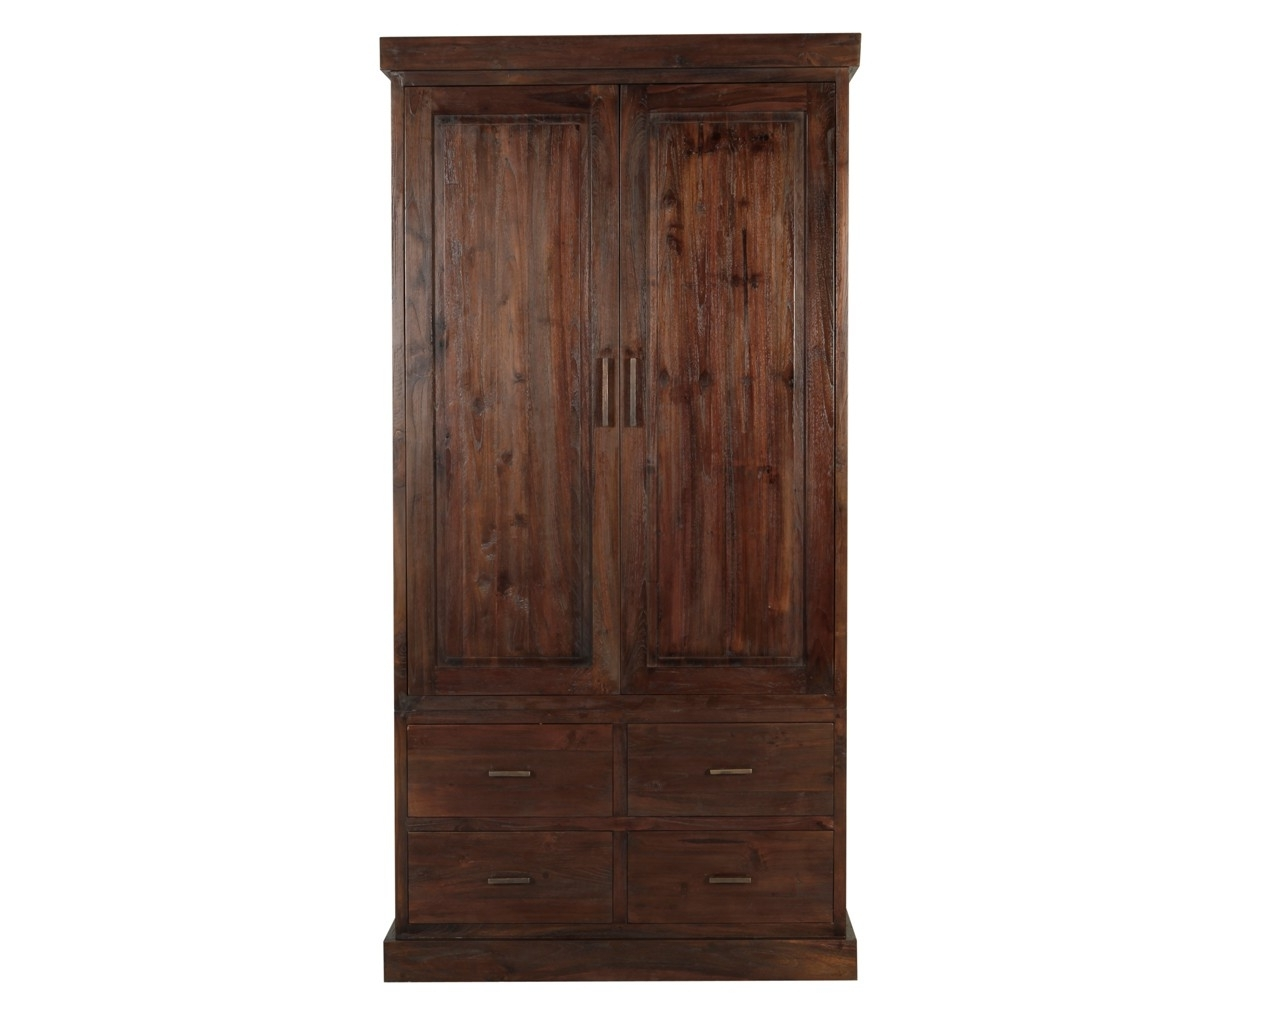 Dark Brown Wardrobes Intended For Popular Painting A Dark Wood Wardrobe Solid Wardrobes Ikea Single Door (View 7 of 15)